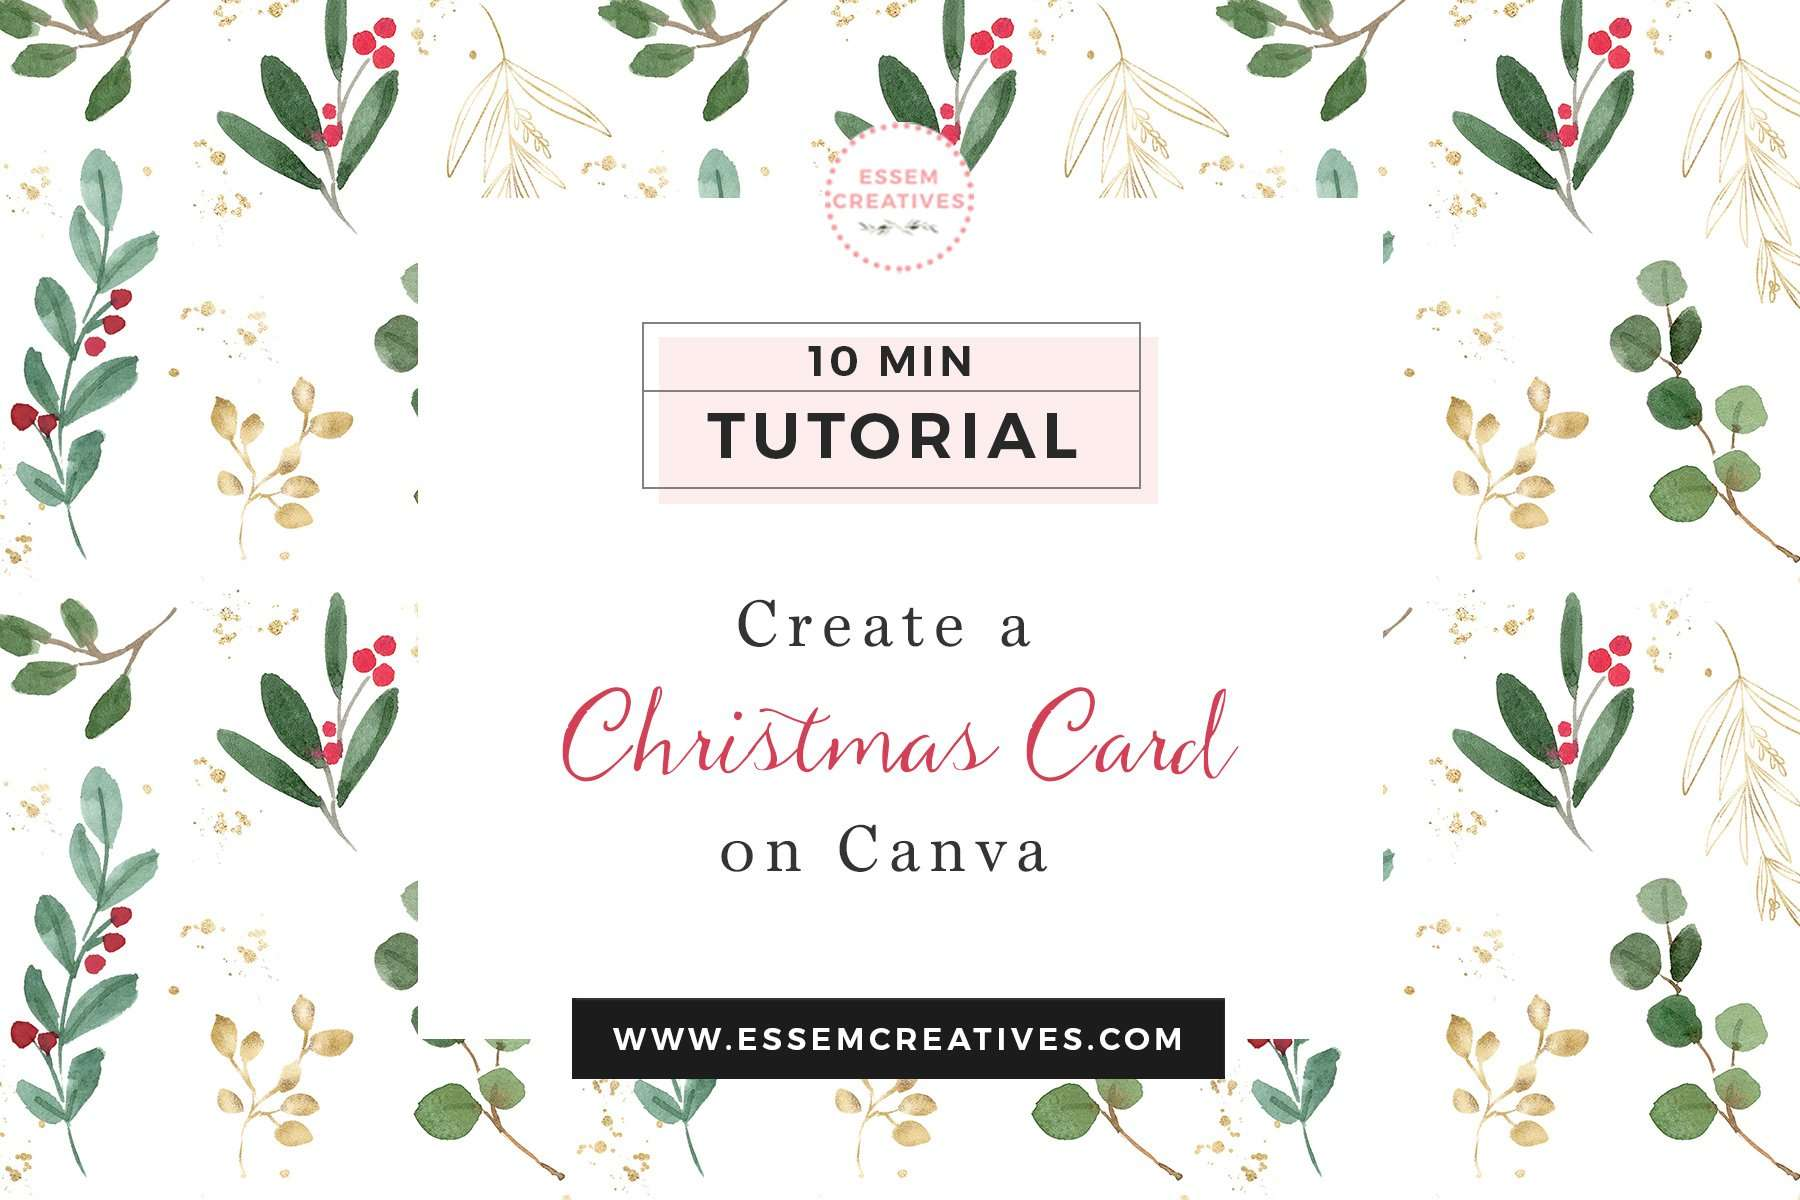 Create a Christmas Card with Photo Online for Free | Would you like to create a lovely Christmas Photo Card for your family using only free software? Would you like to do this quickly & easily, while still getting professional looking results? Click to watch my quick 10 minute tutorial which you can follow to design your own watercolour christmas card this year! Click to see more>> #christmascard #canva #canvatutorial #holidaygreetings #christmas2019 #christmas2020